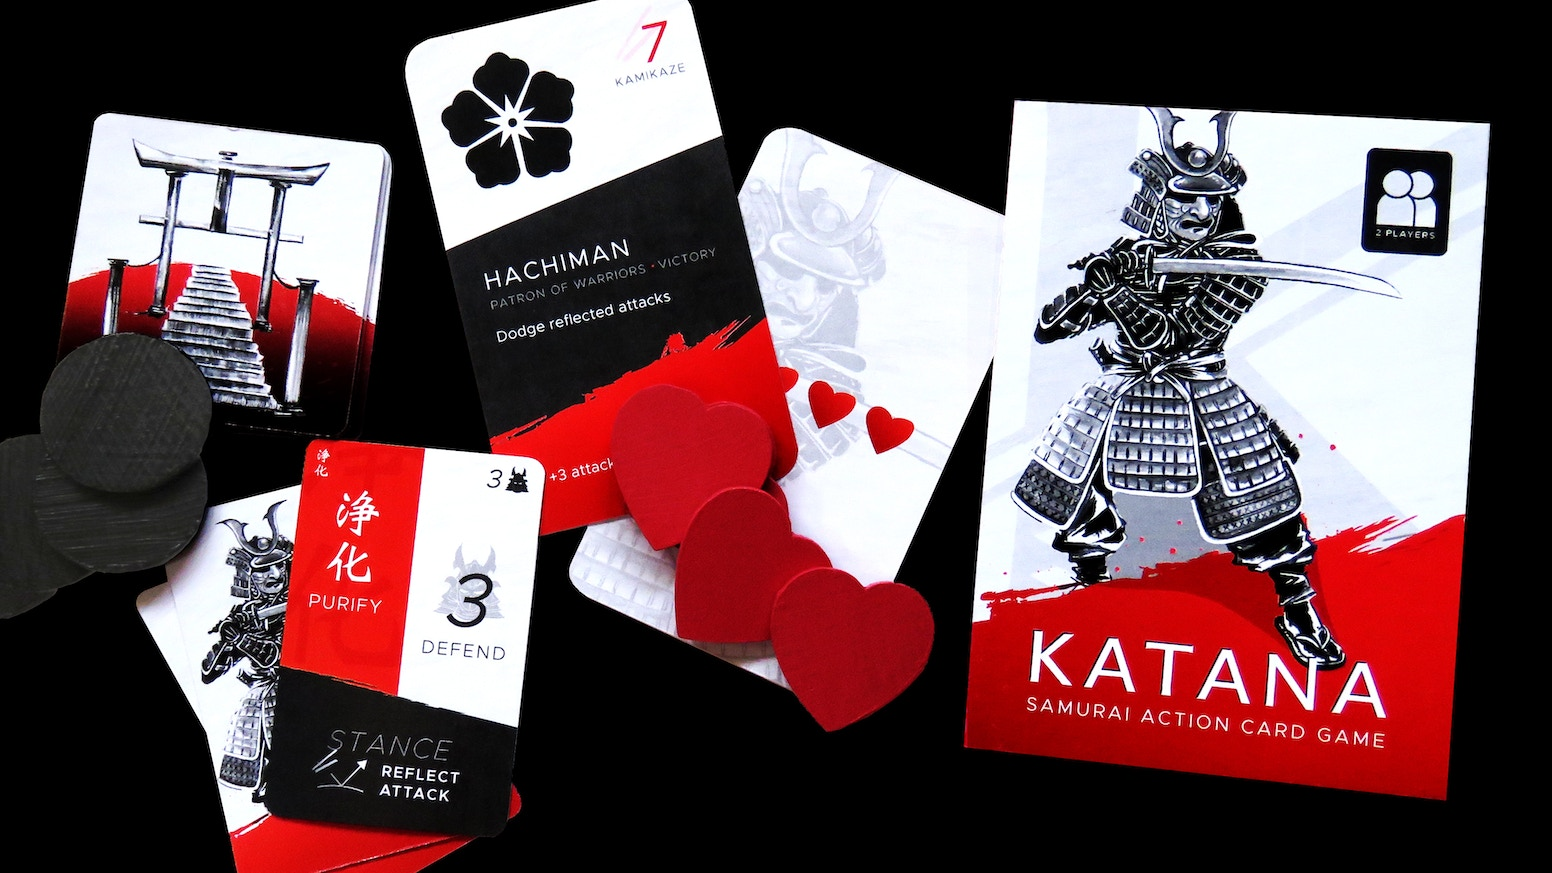 A competitive samurai sword-fighting card game for two players.